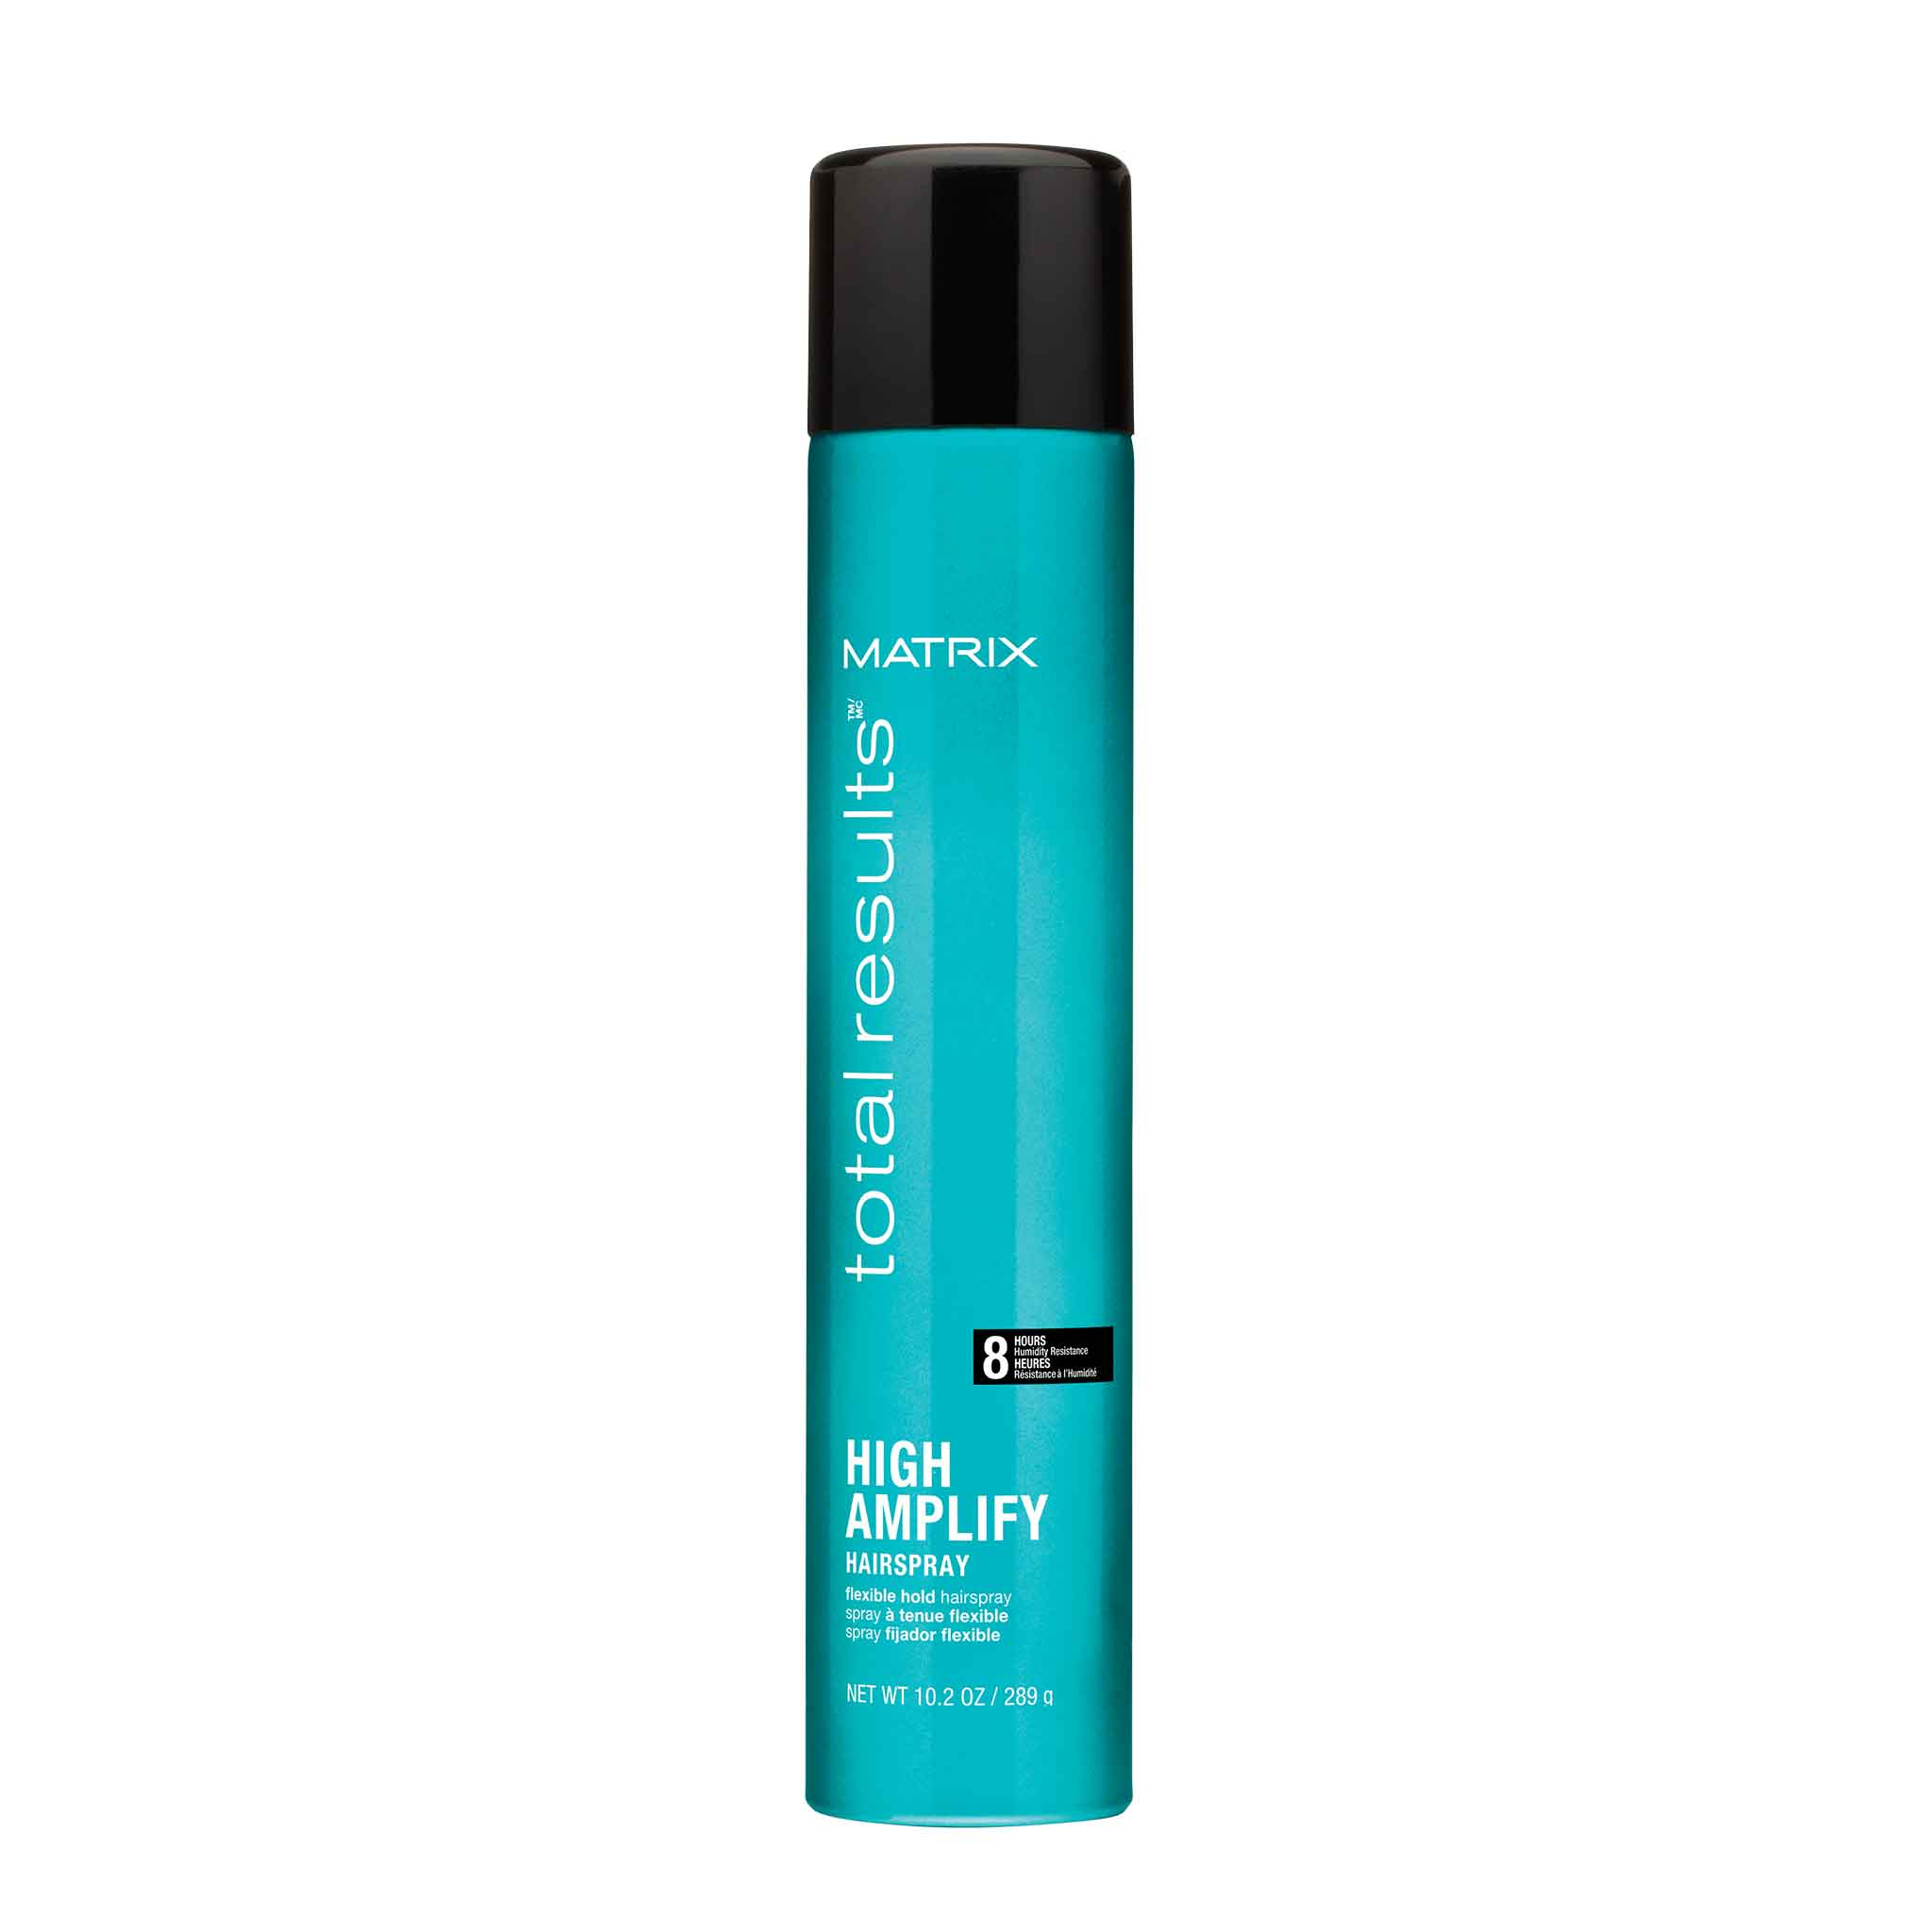 HIGH AMPLIFY HAIRSPRAY